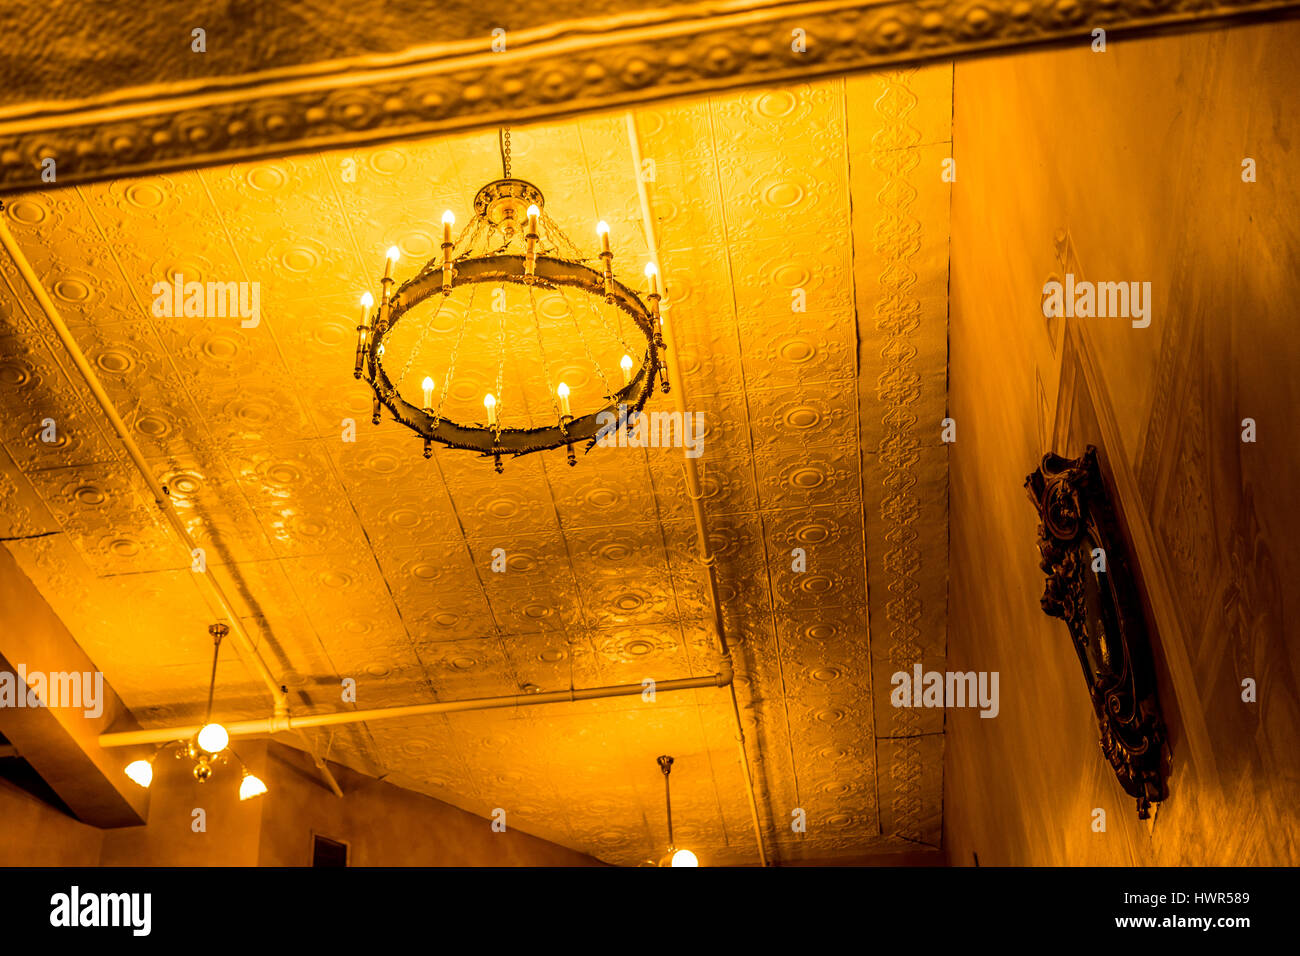 Inside a theater in Lincoln, Nebraska, a glowing light fills the room. Stock Photo